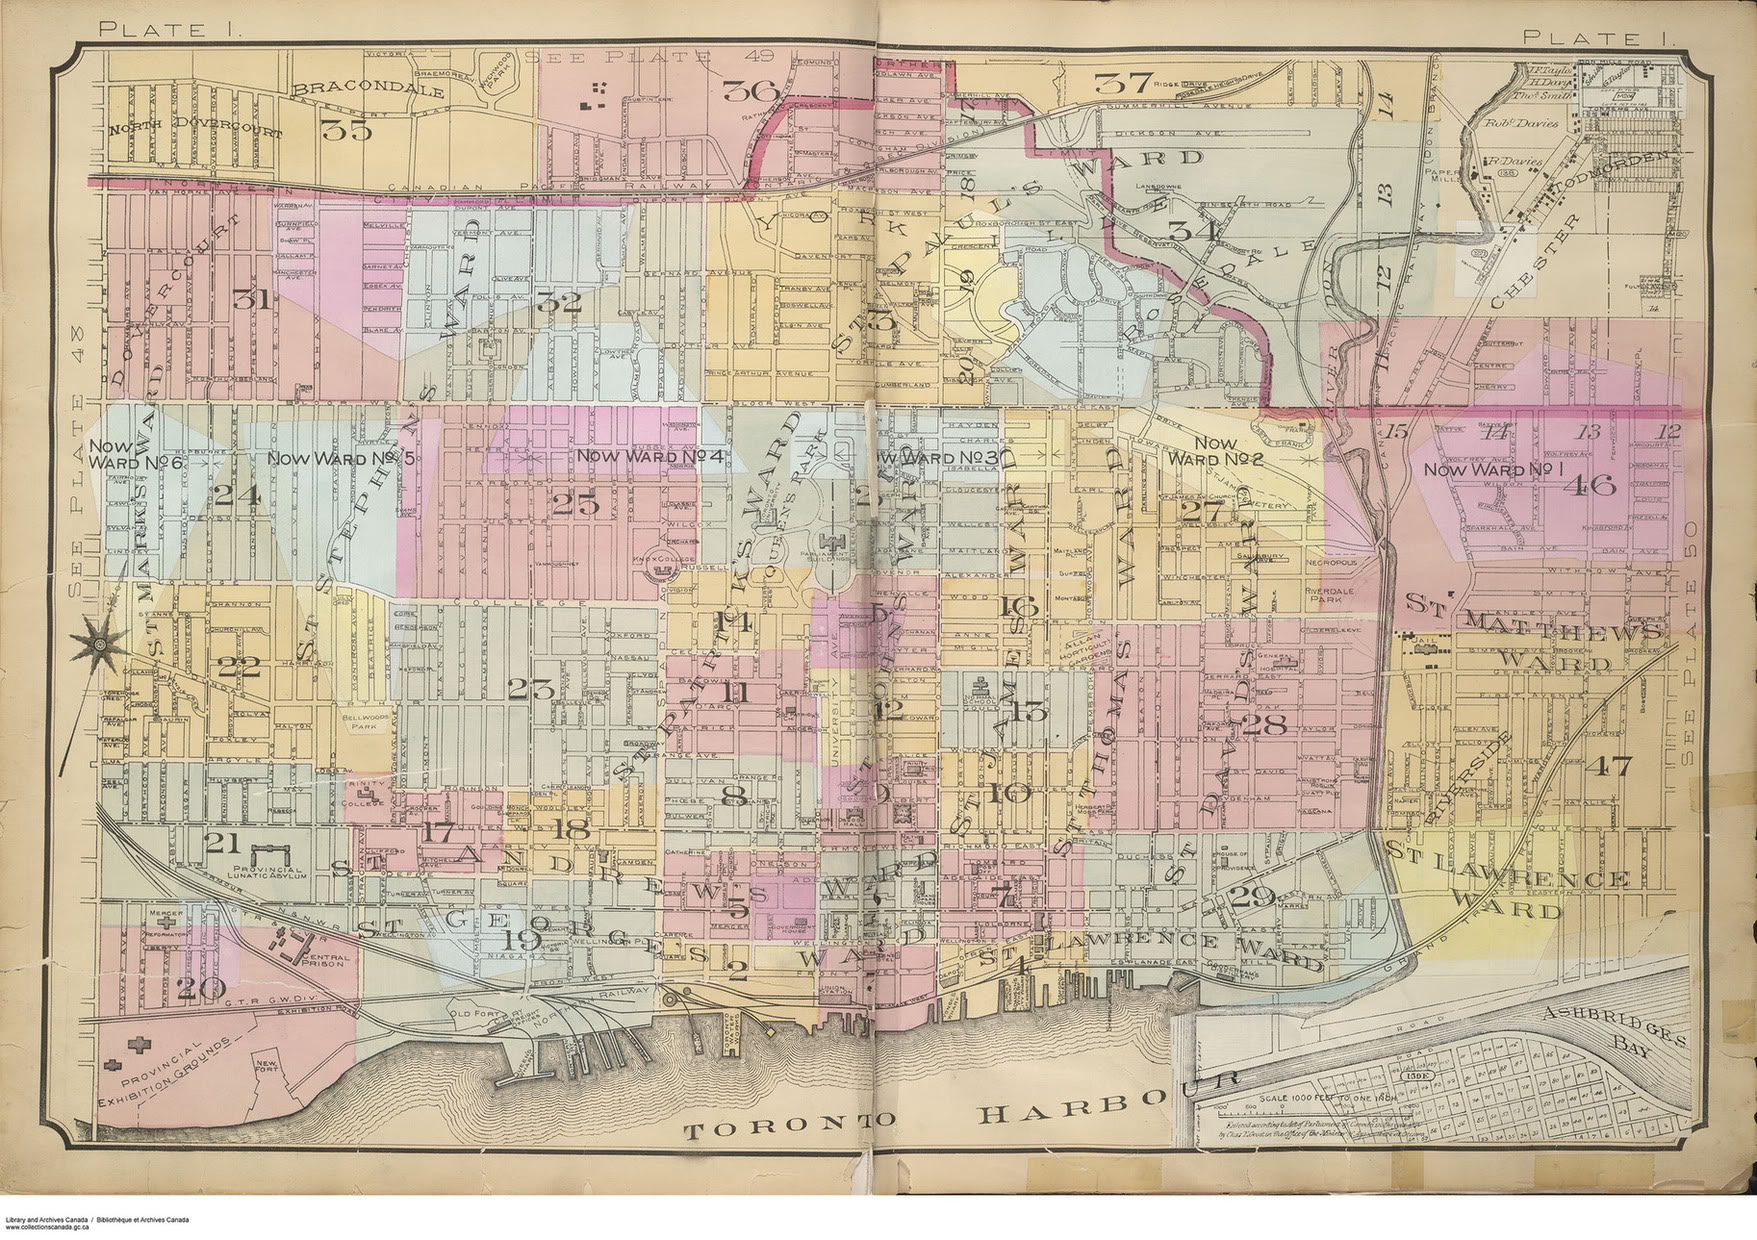 Northbay Fire Map.Goad S Atlas Of The City Of Toronto Fire Insurance Maps From The